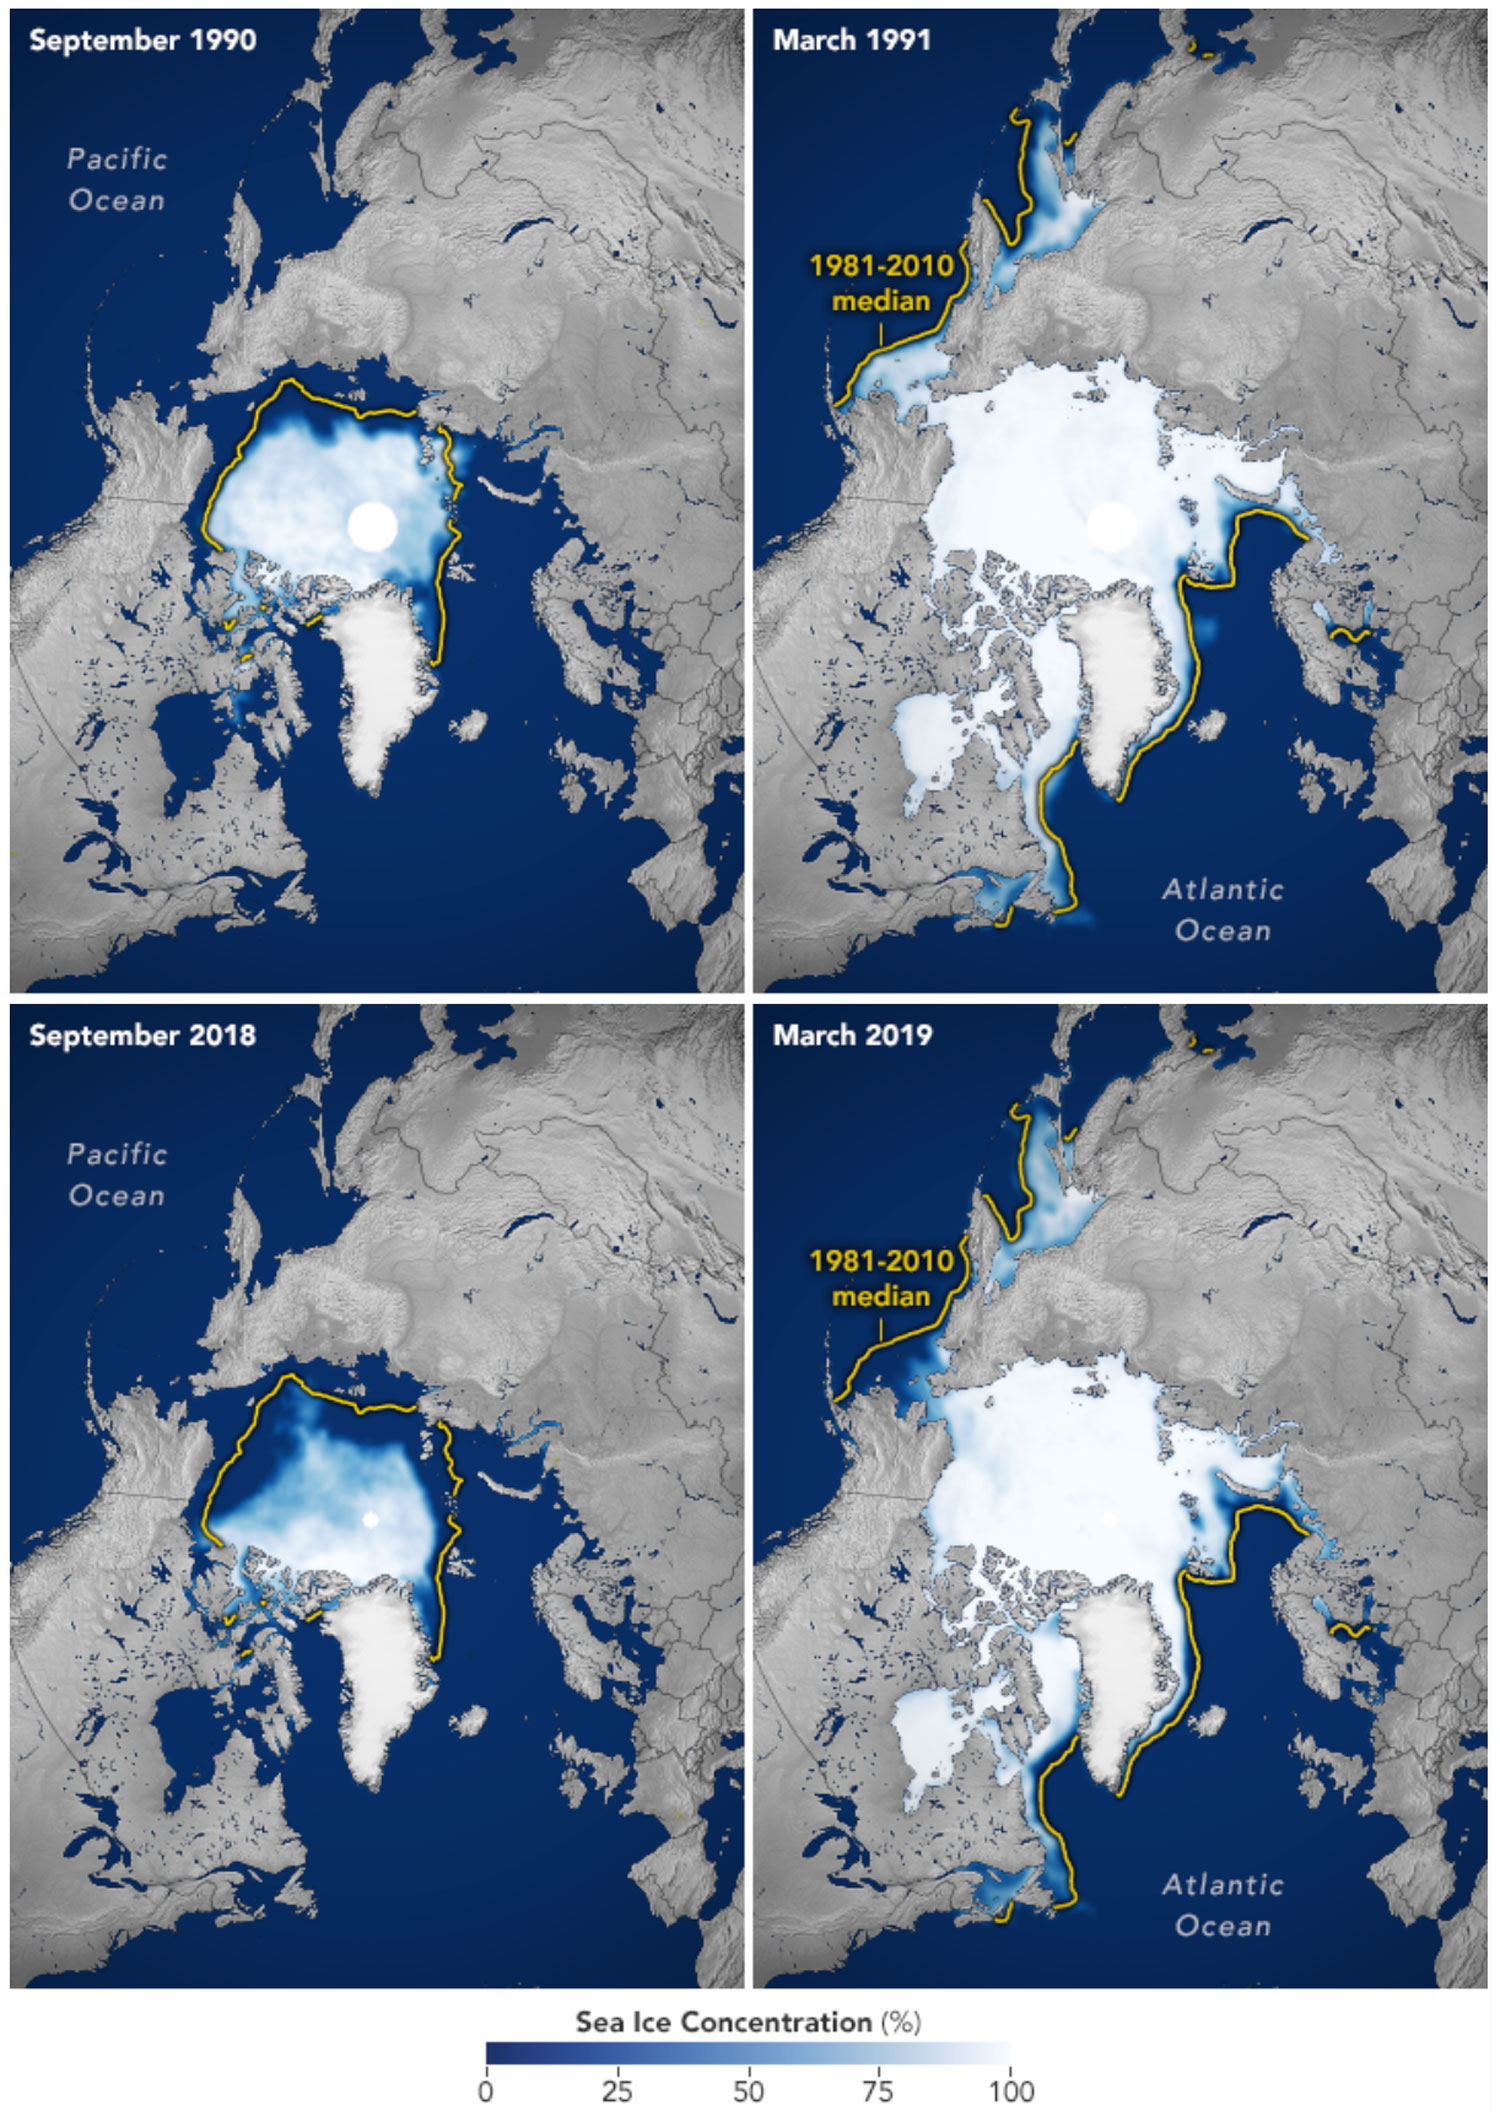 Four maps showing comparing the reduction in Arctic sea ice between 1990-1991 and 2018-2019.